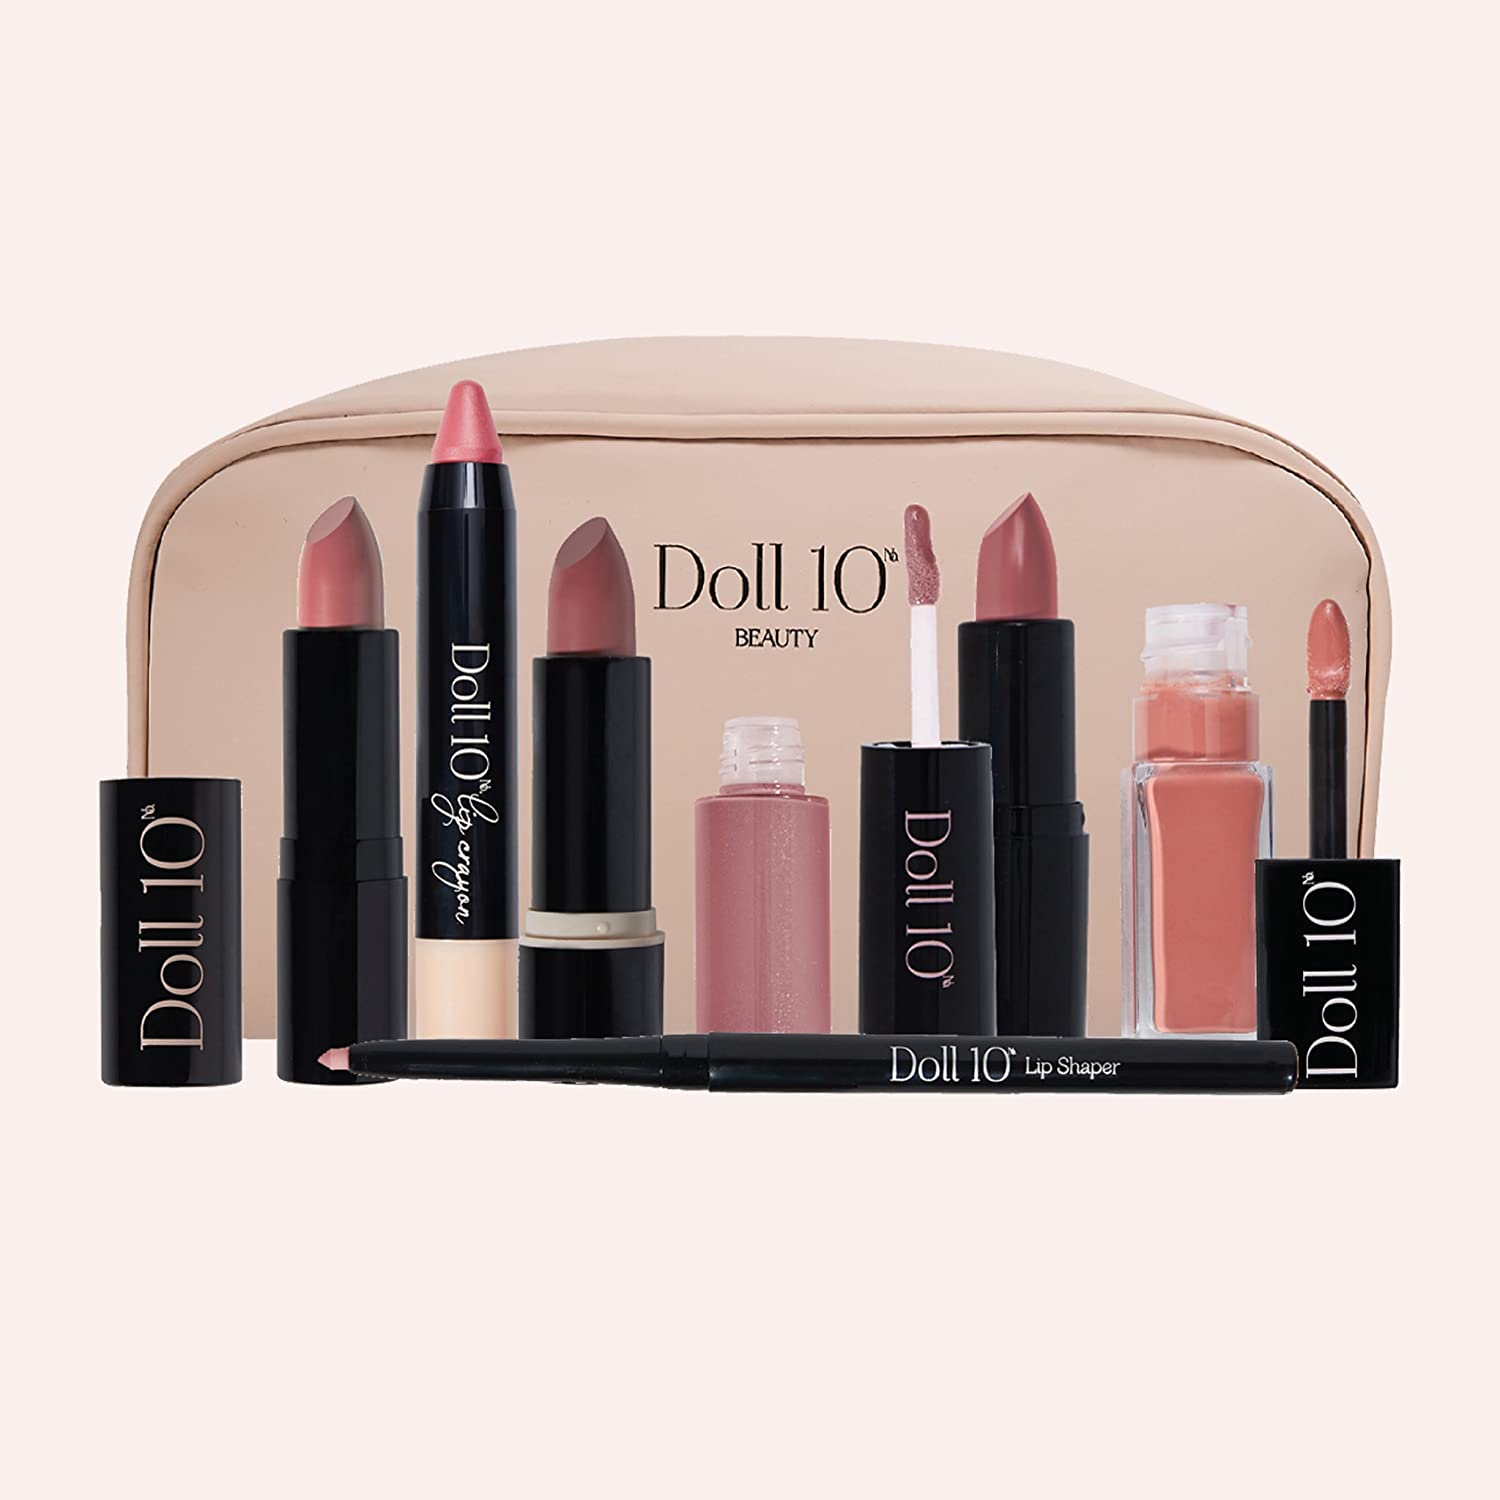 The Best of Lips Collection